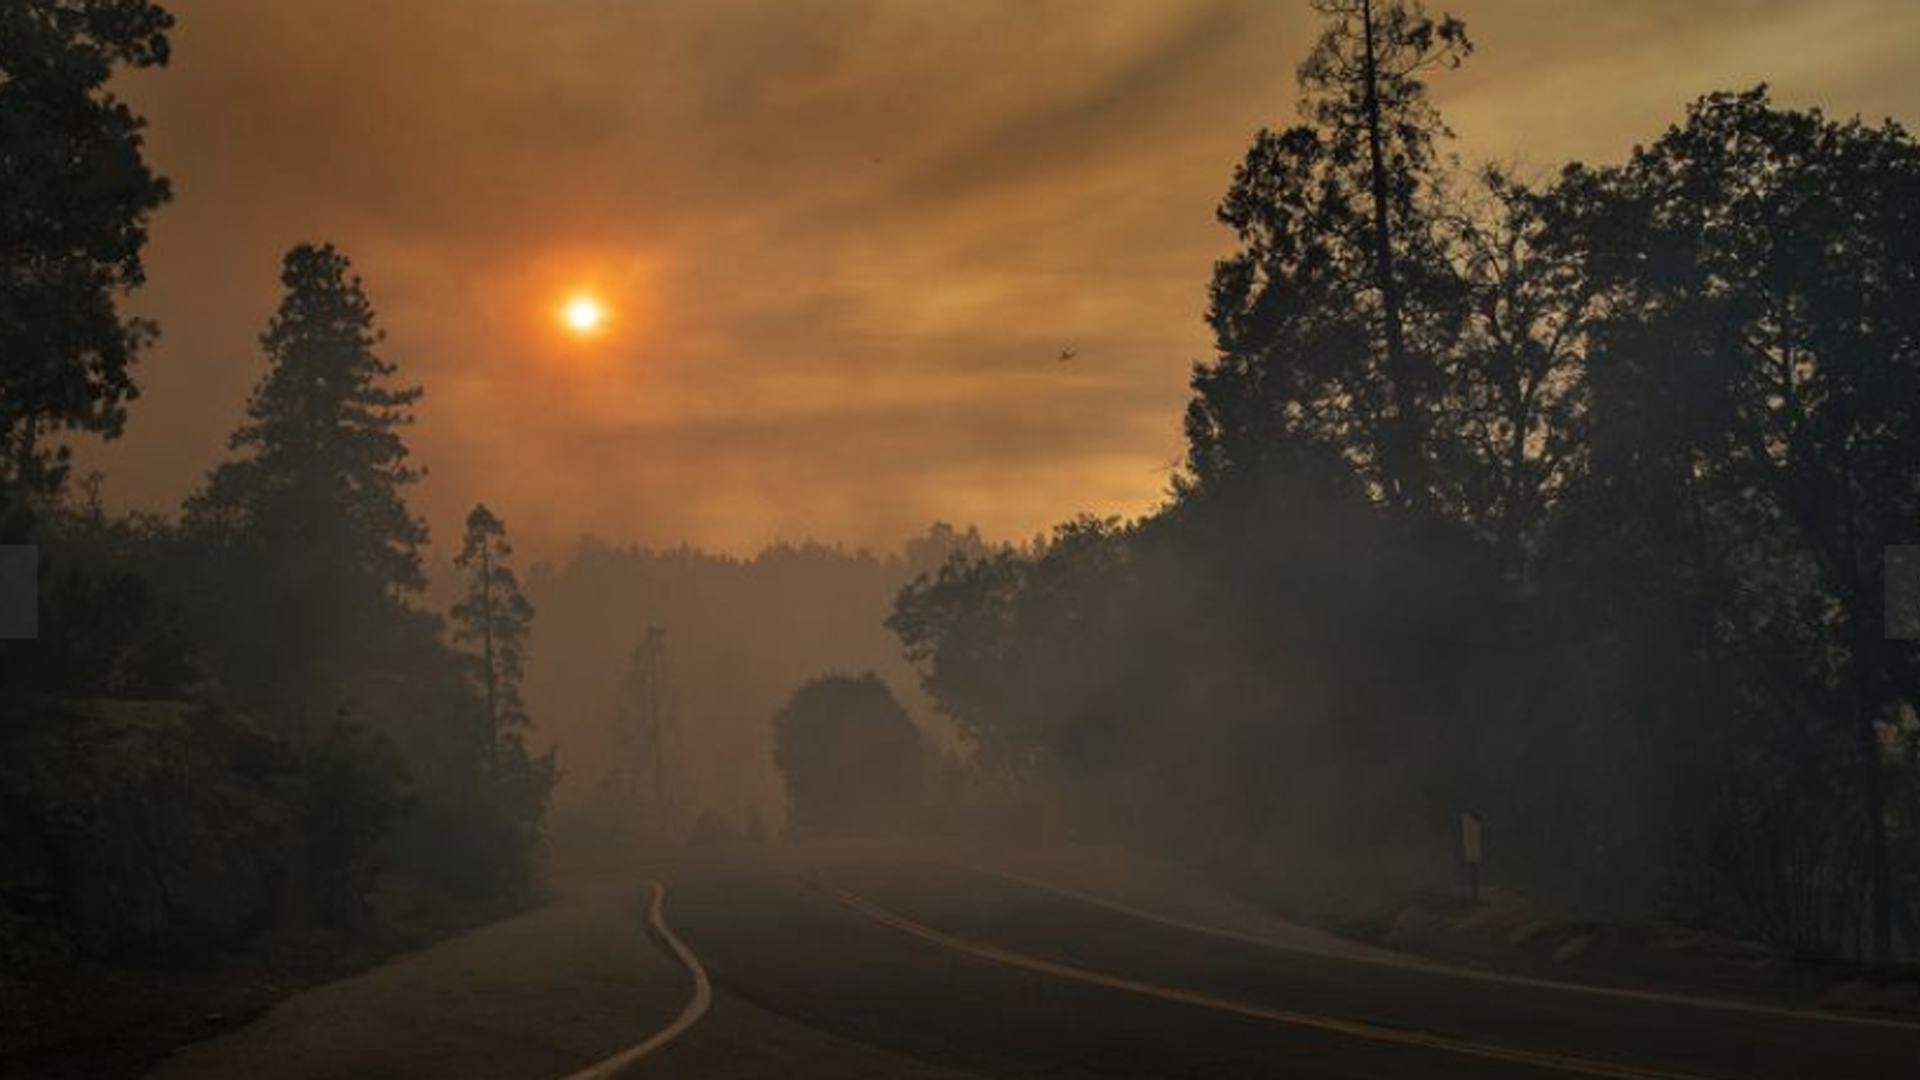 A smoky haze fills the landscape in Idyllwild on July 25, 2018. (Credit: Gina Ferazzi / Los Angeles Times)